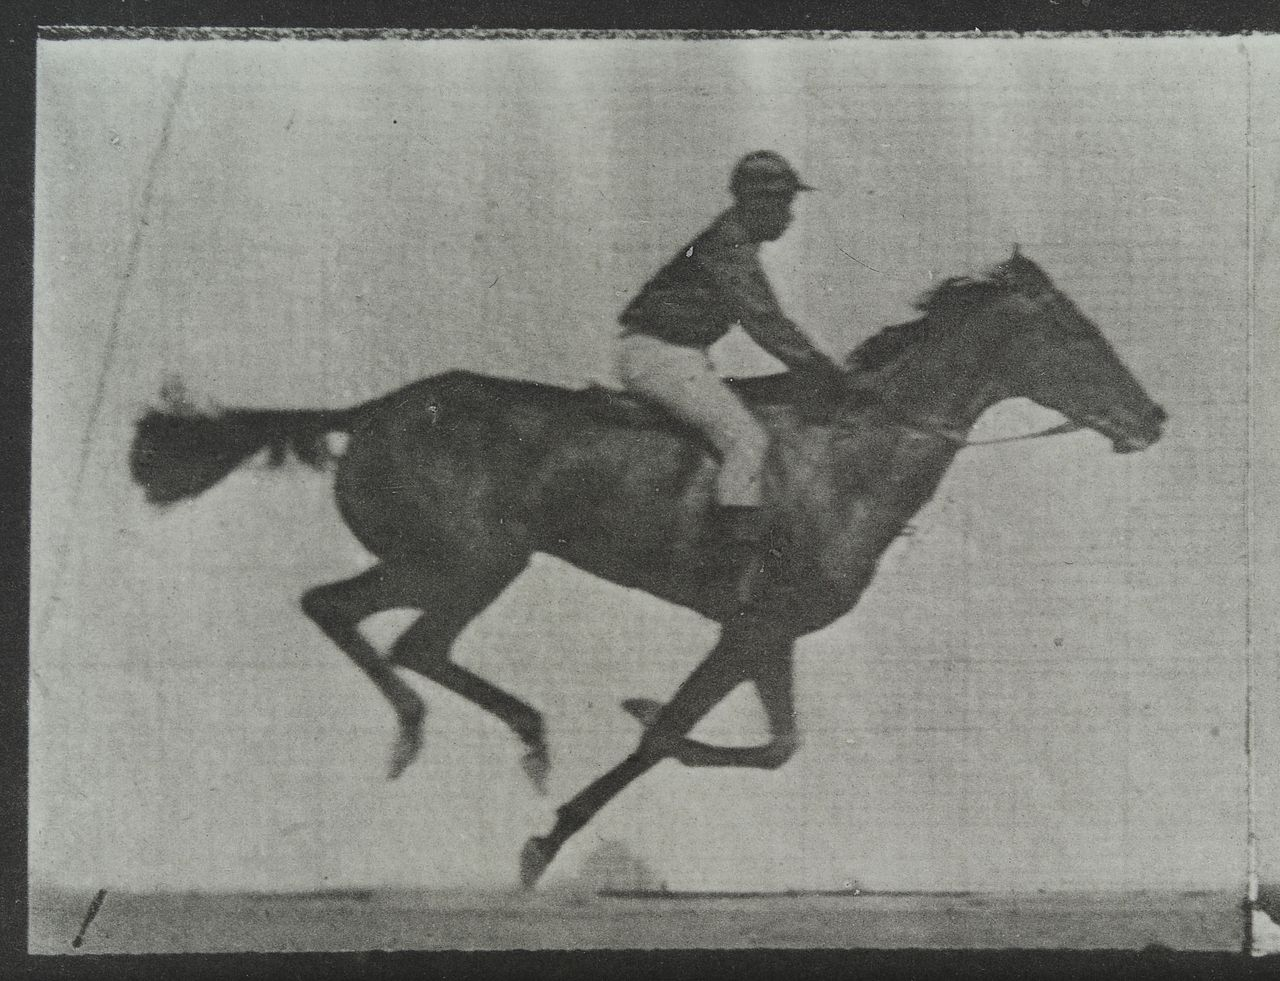 FileA Galloping Horse And Rider Plate 1 Wellcome L0038057